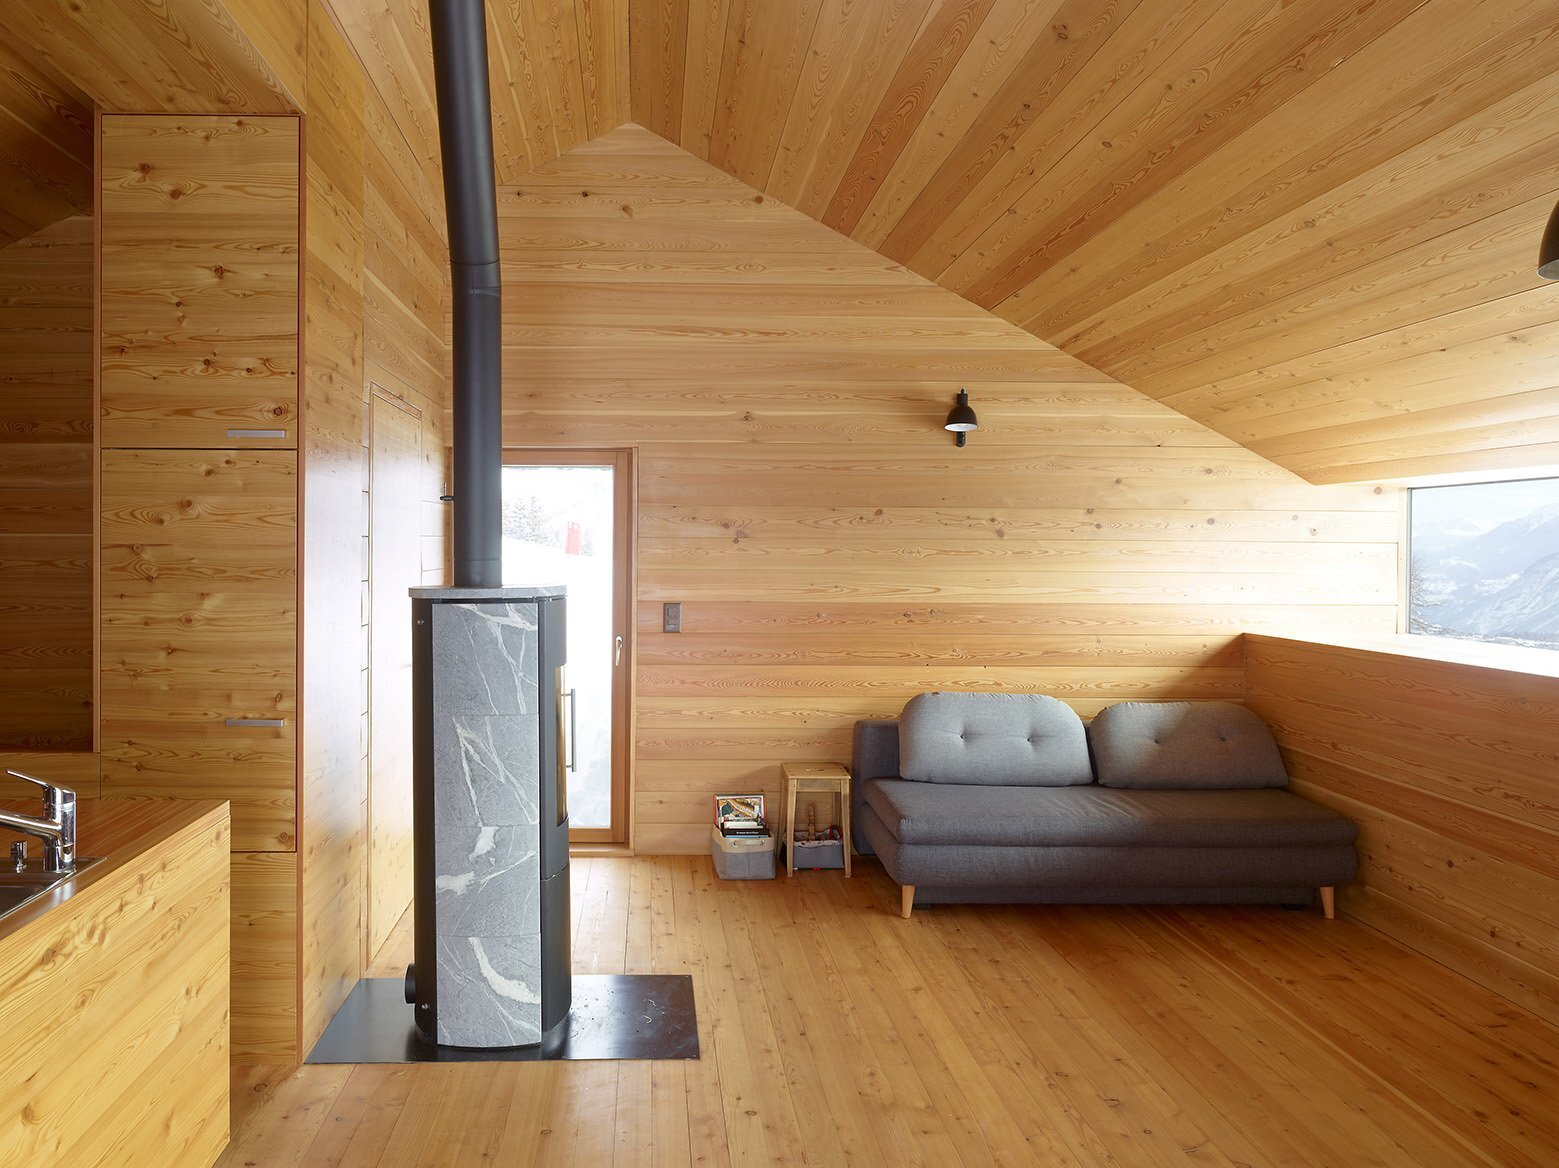 Gaudin House - Small Cabin - Savioz Fabrizzi Architectes - Switzerland - Living Area - Humble Homes